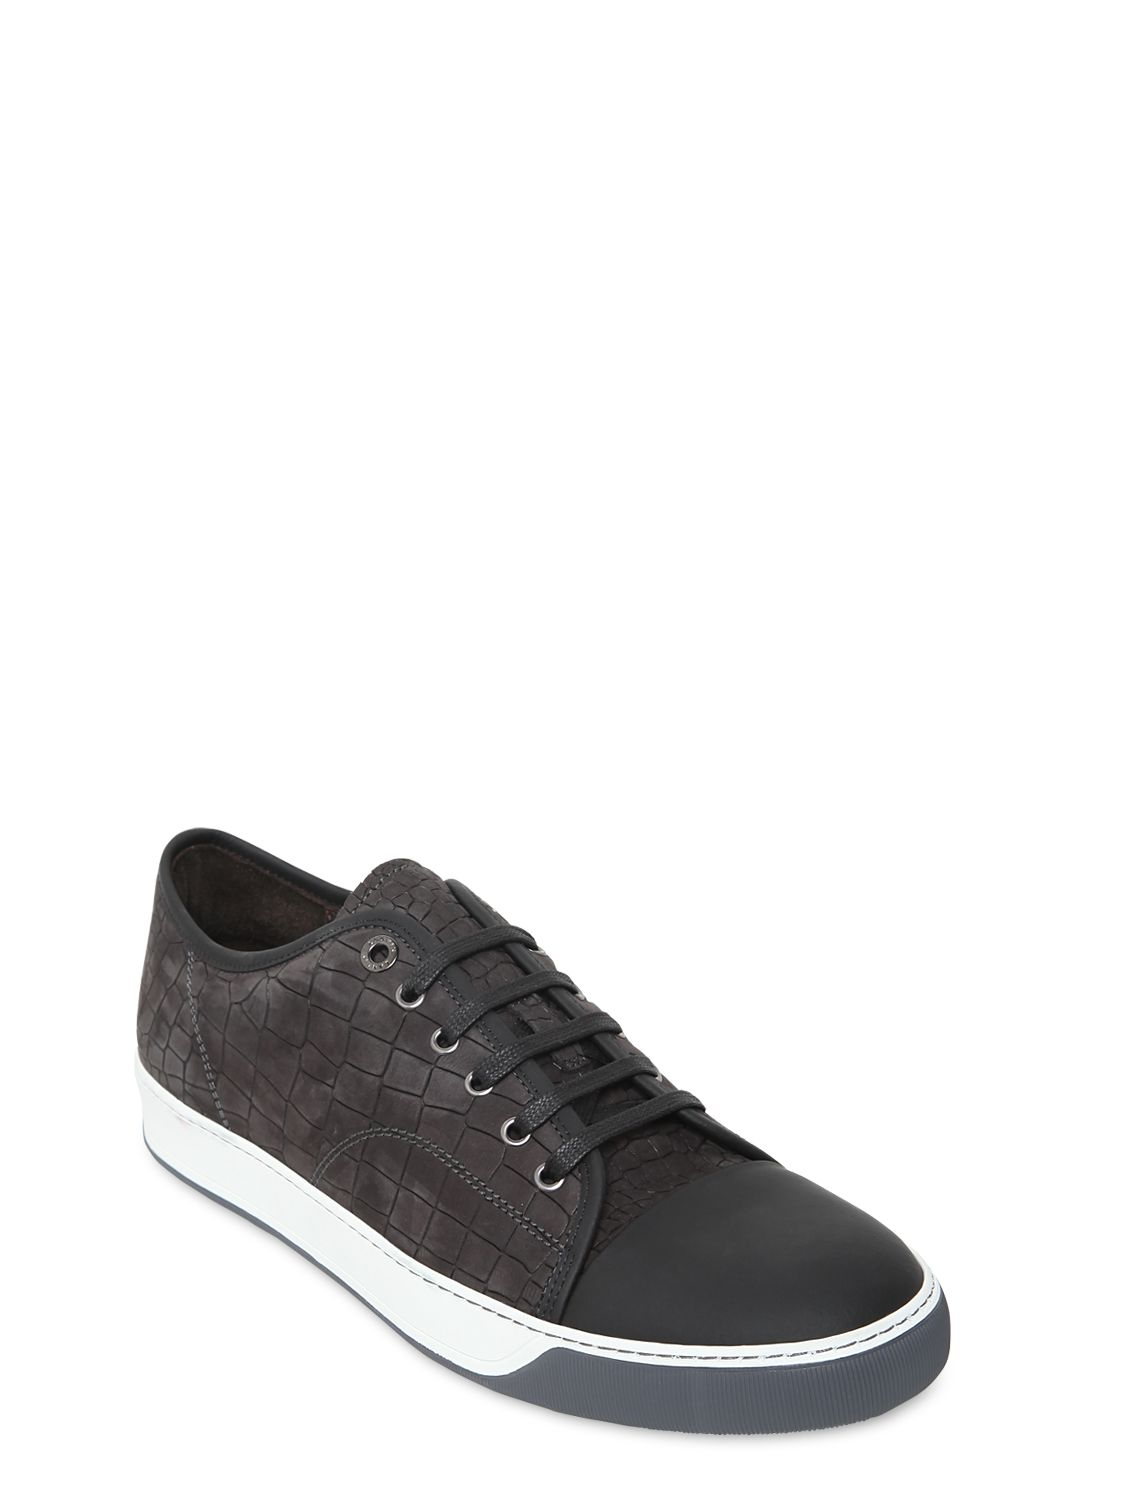 Mens Crocodile-Stamped Nubuck Sneakers Lanvin